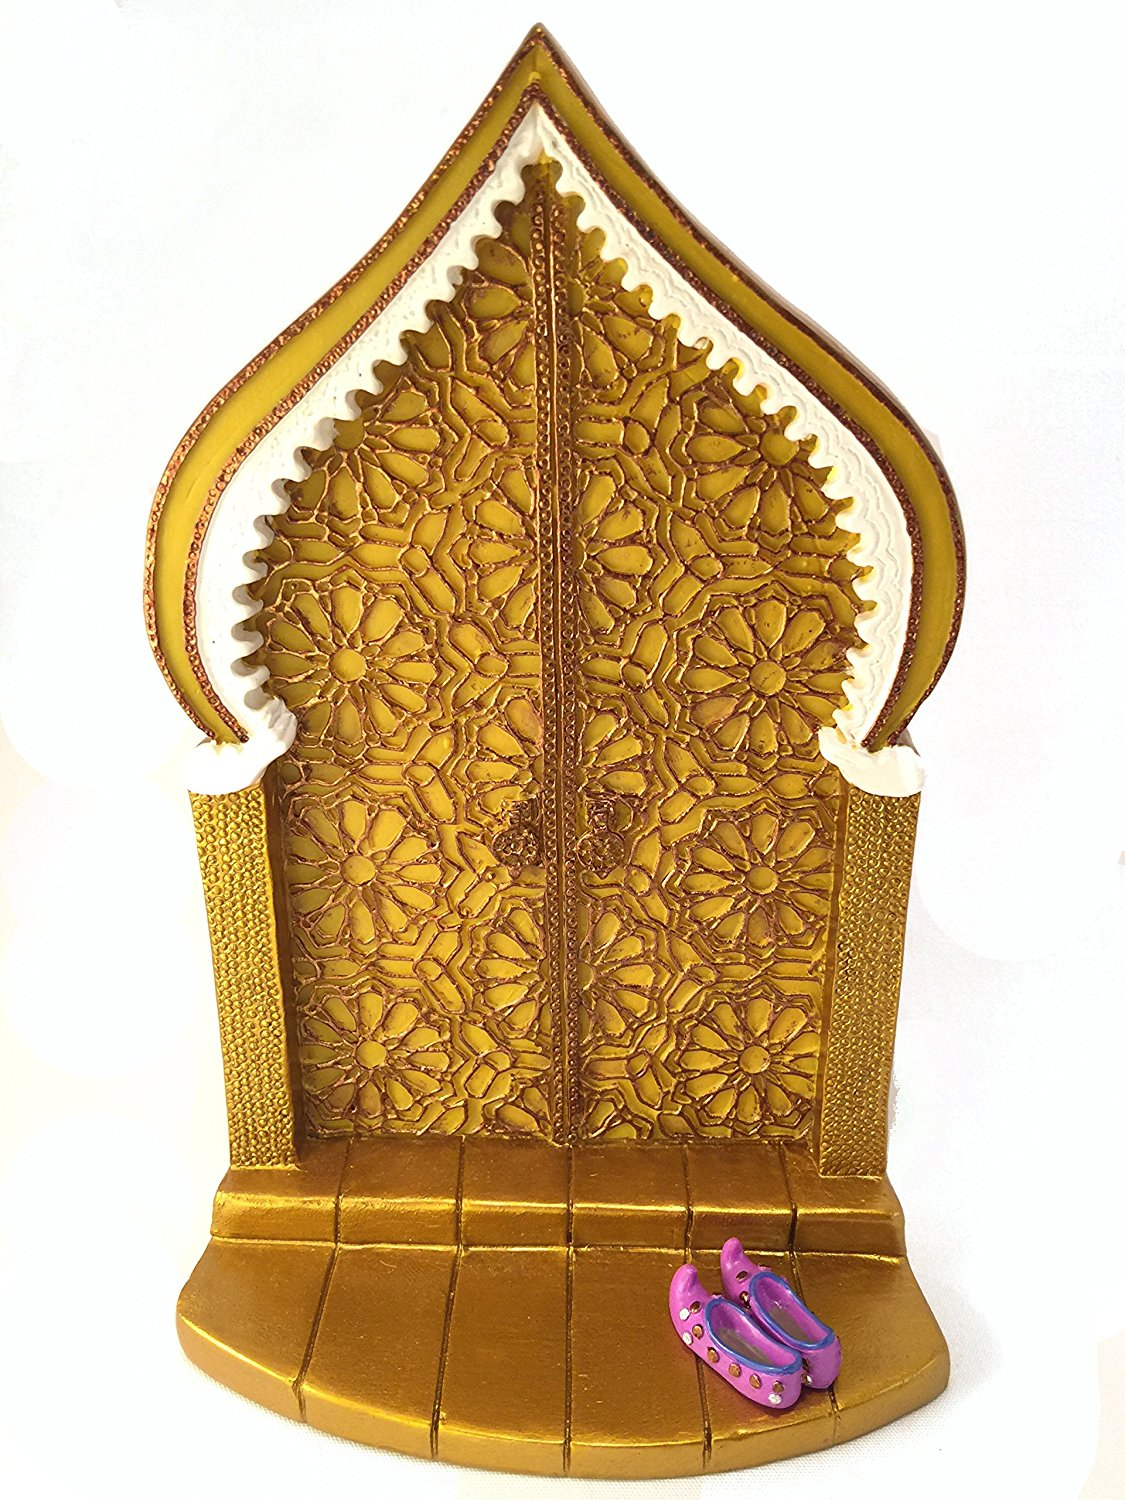 Miniature Fairy Door for a the Enchanted Garden Fairies and Gnomes - A Beautiful Golden Moroccan Style Miniature Door with Removable Purple Fairy Shoes